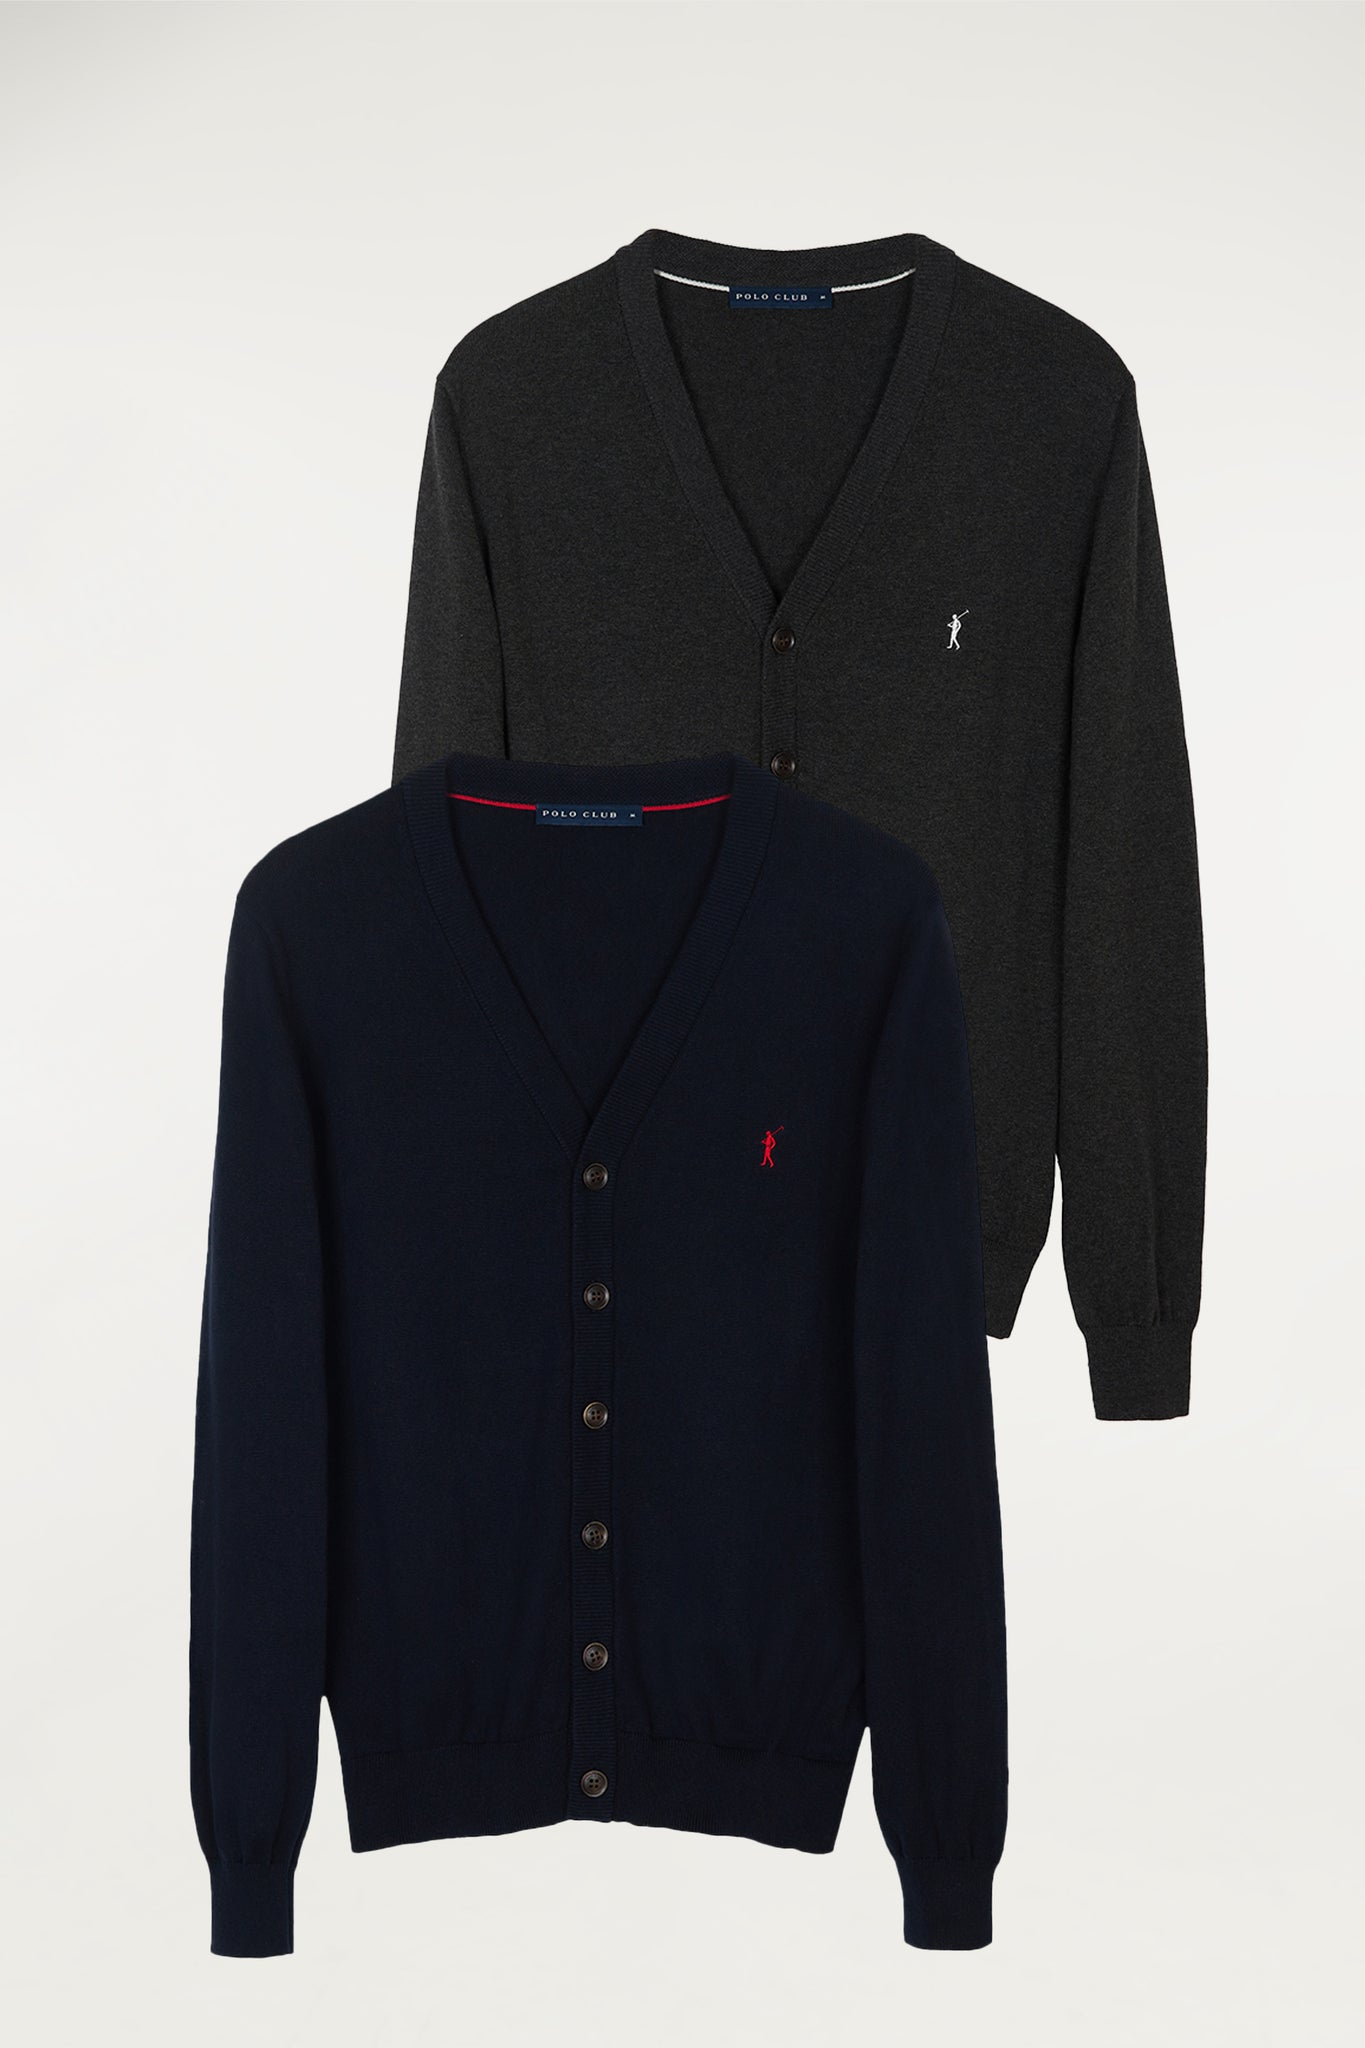 Cardigan two pack (navy blue and carbon grey)